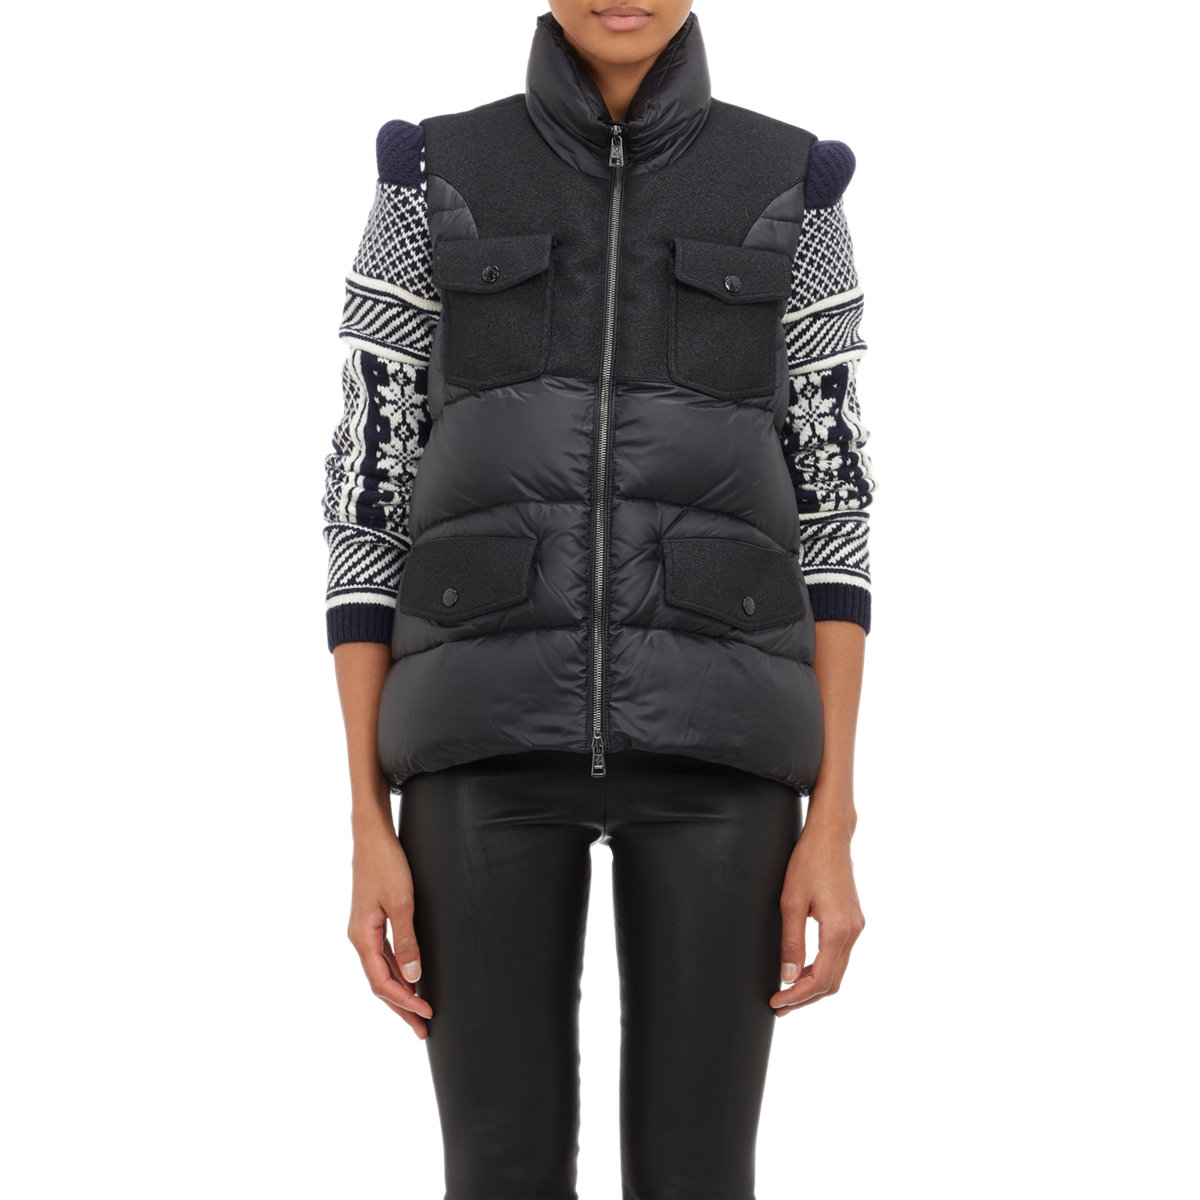 Moncler Down-quilted Vest in Black | Lyst : down quilted vest - Adamdwight.com